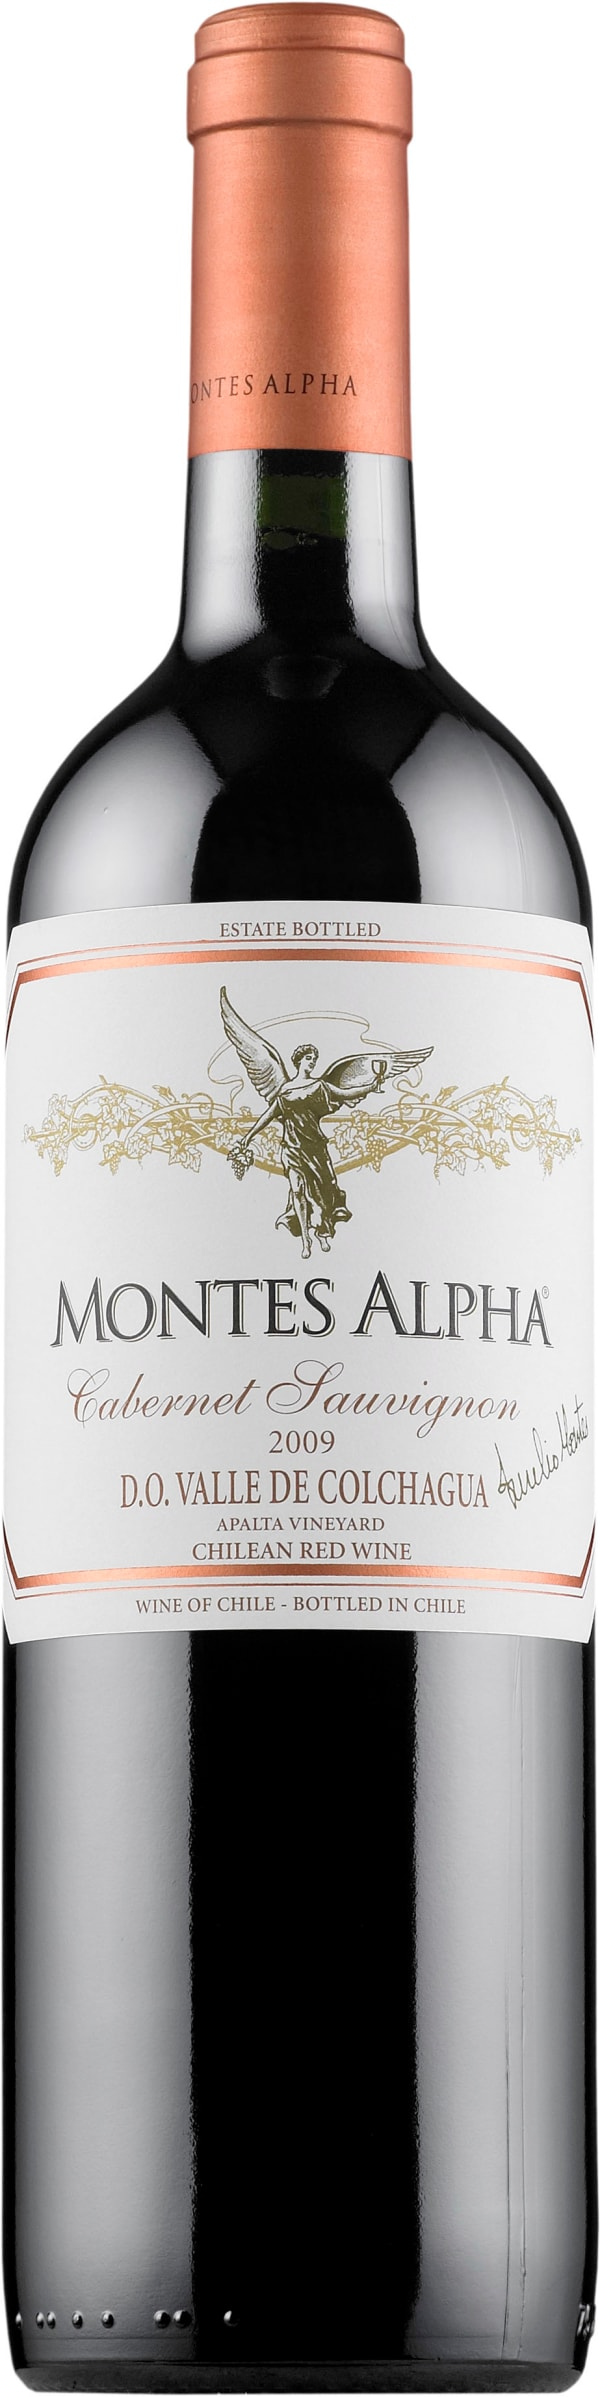 Montes Alpha Cabernet Sauvignon 2016 gift packaging